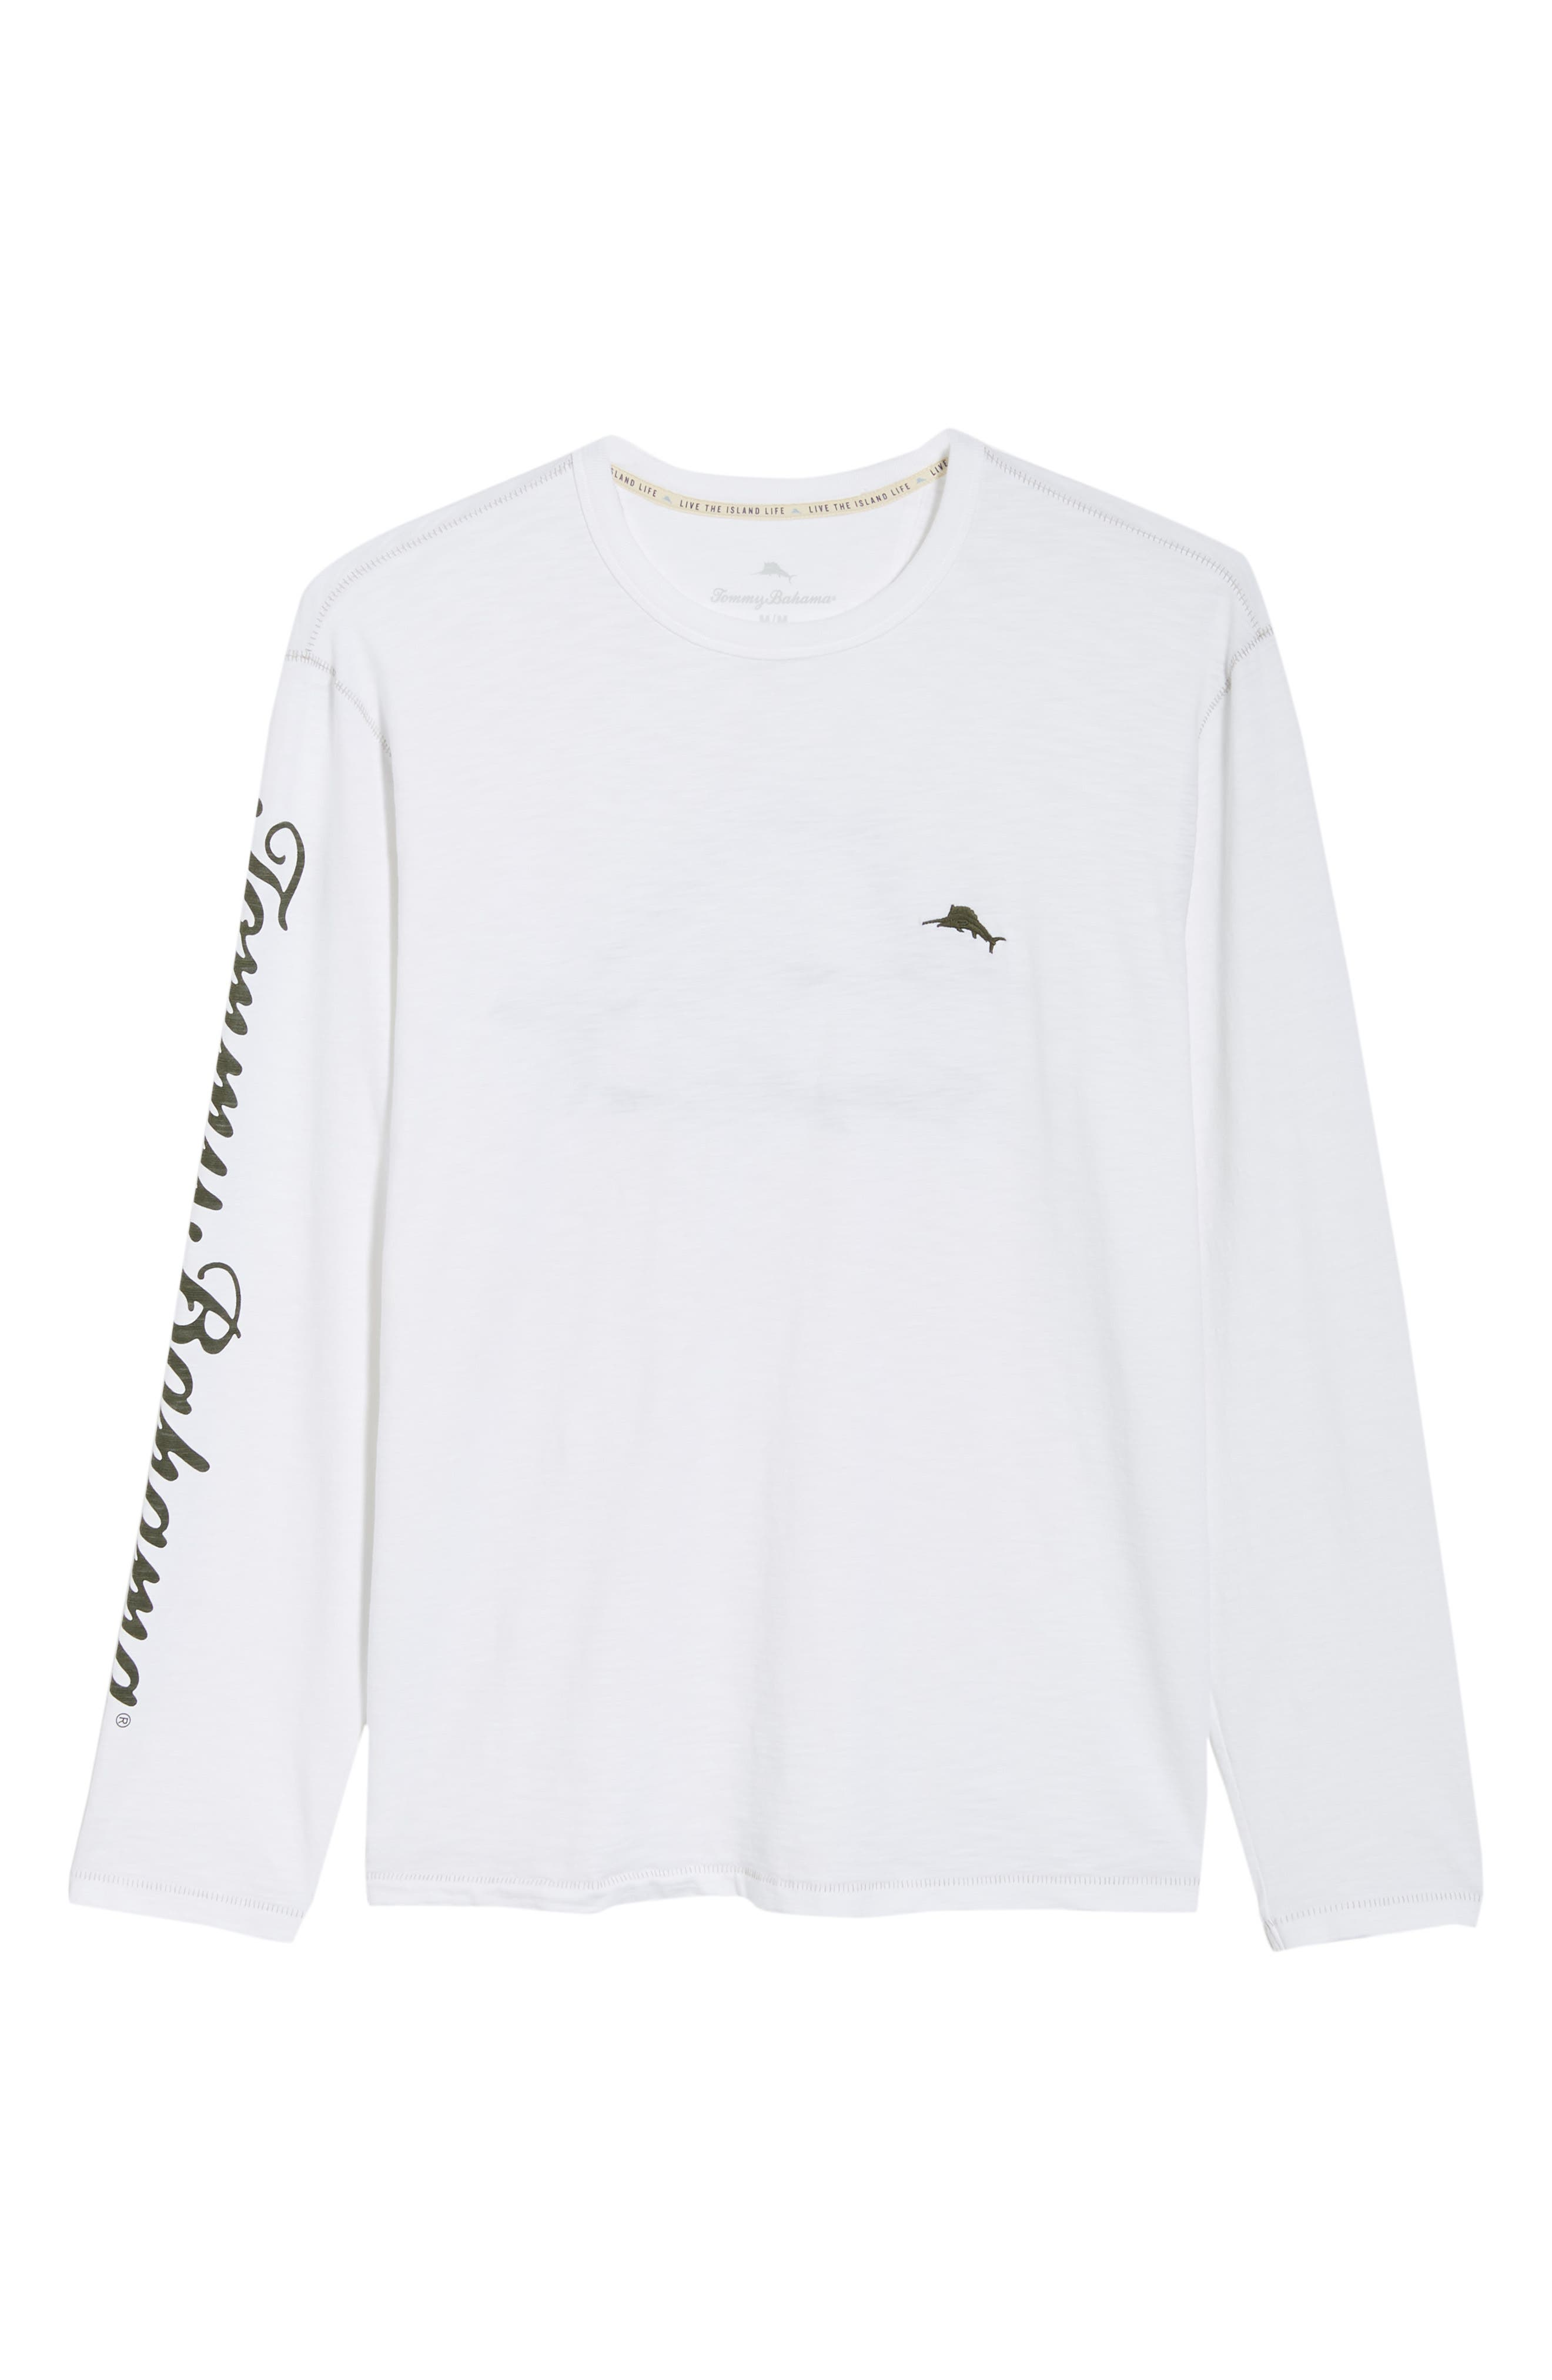 Palm Billboard Marlin Lux Long Sleeve T-Shirt,                             Alternate thumbnail 4, color,                             White